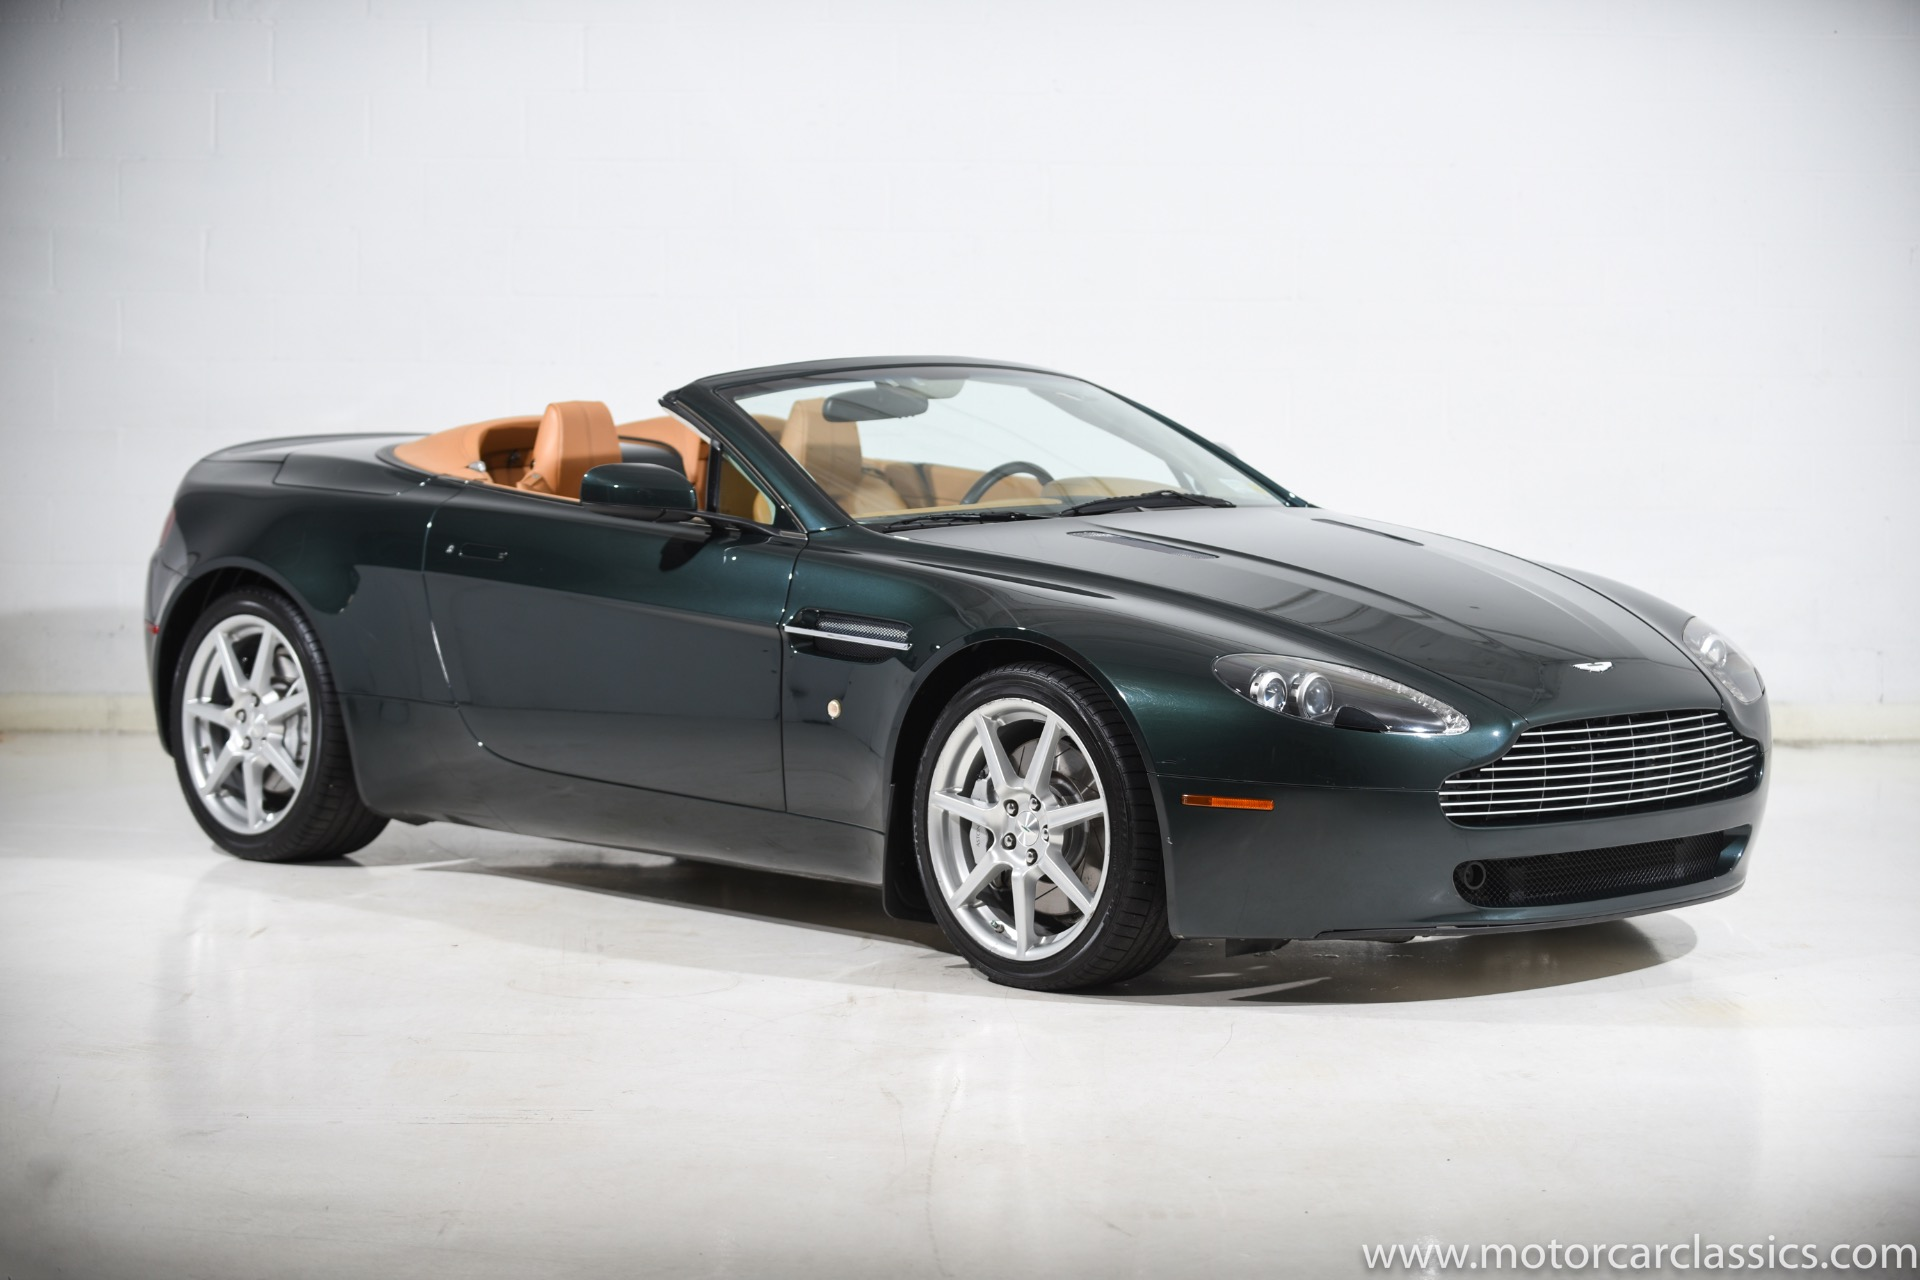 Used 2008 Aston Martin V8 Vantage Roadster For Sale 43 900 Motorcar Classics Stock 1448